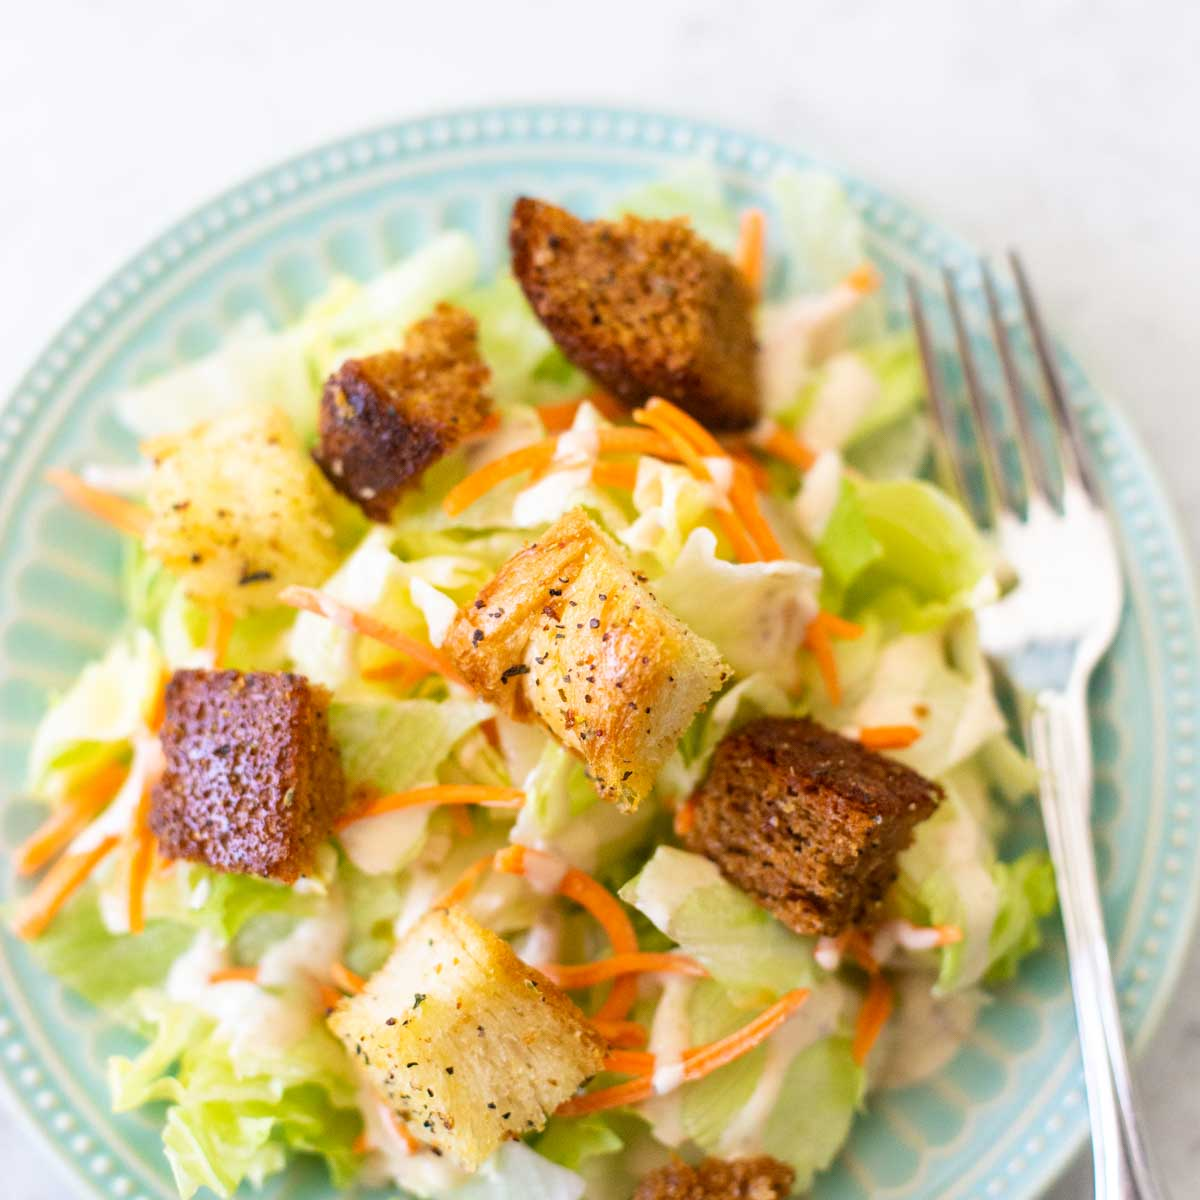 A simple green salad is topped with shredded croutons and homemade croutons made from bread machine bread.